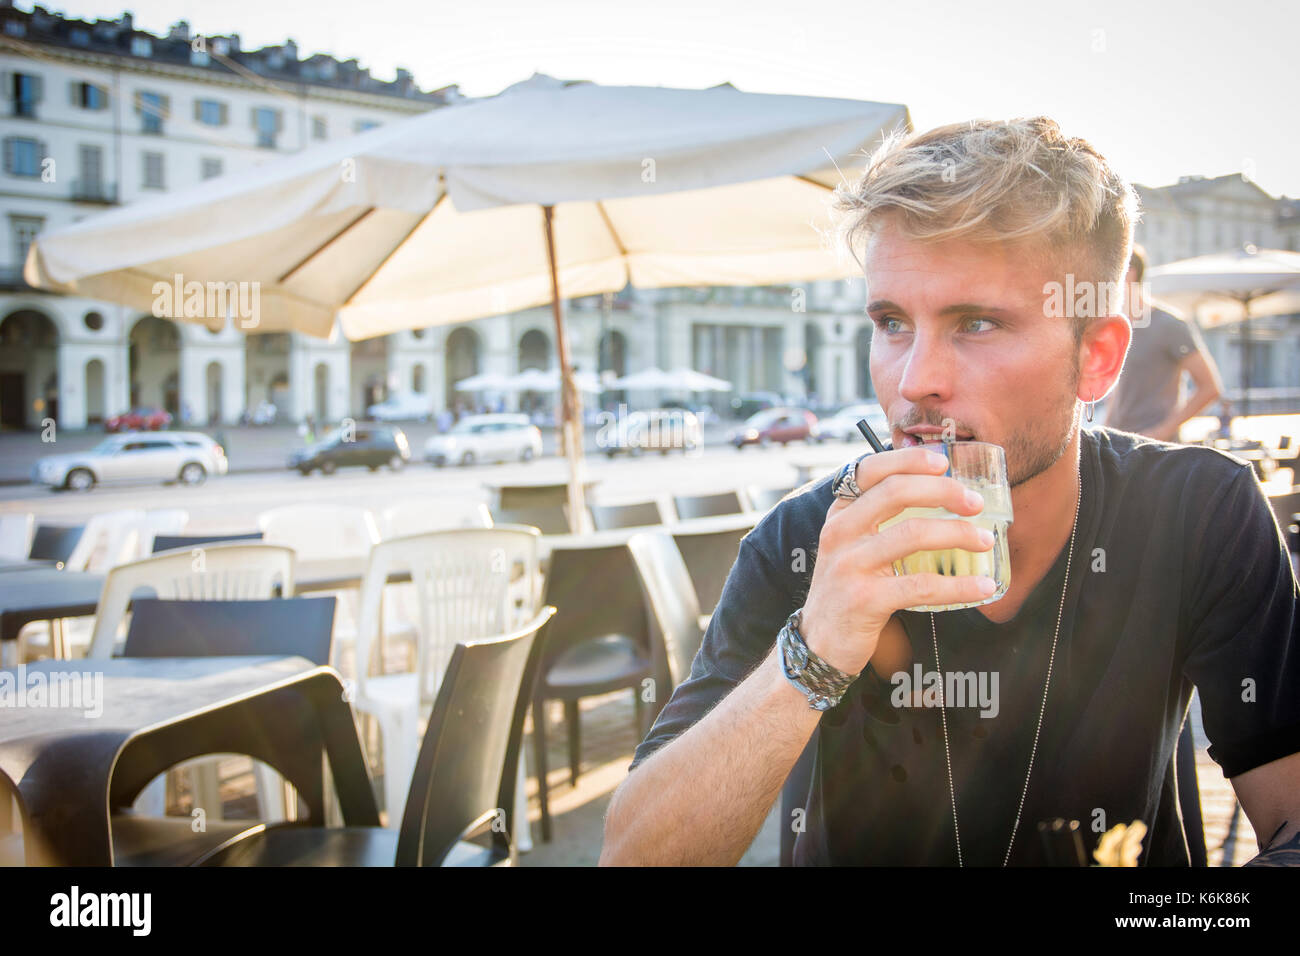 Handsome man sitting in cafe holding glass Photo Stock